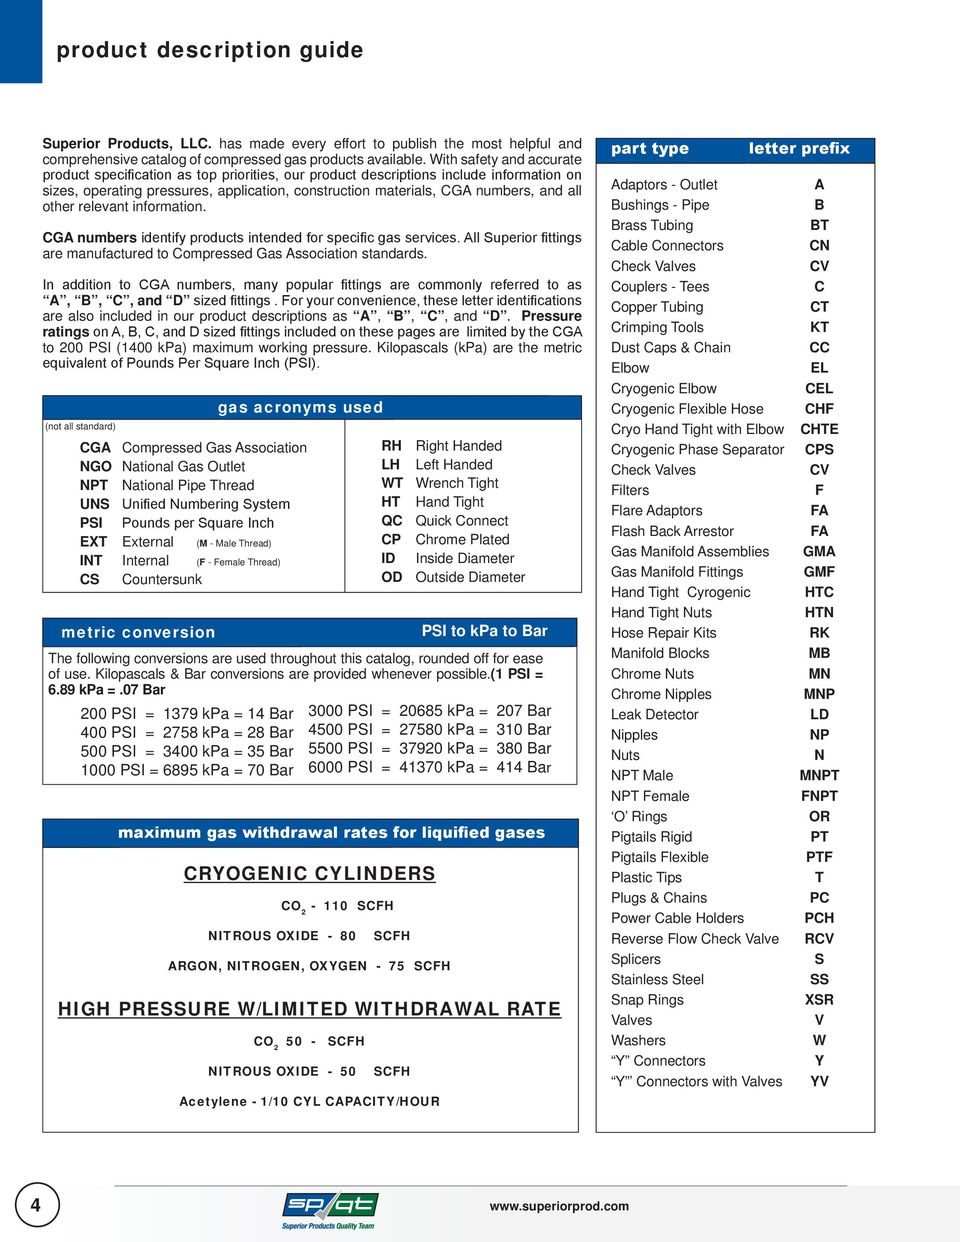 Superior products llc pdf cga numbers are manufactured to compressed gas association standards a b c nvjuhfo Gallery